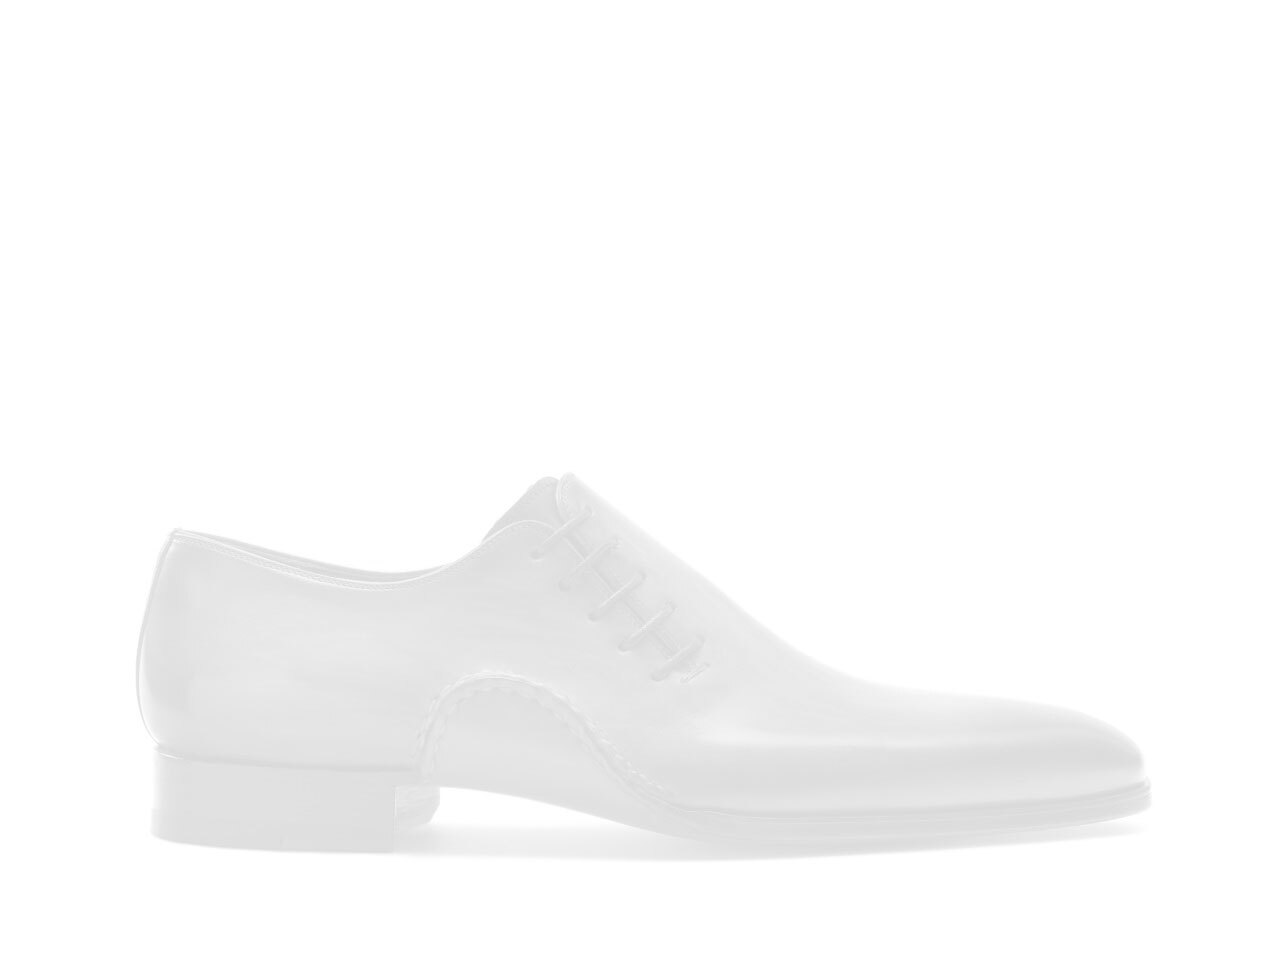 Pair of the Magnanni Reina II White Men's Sneakers